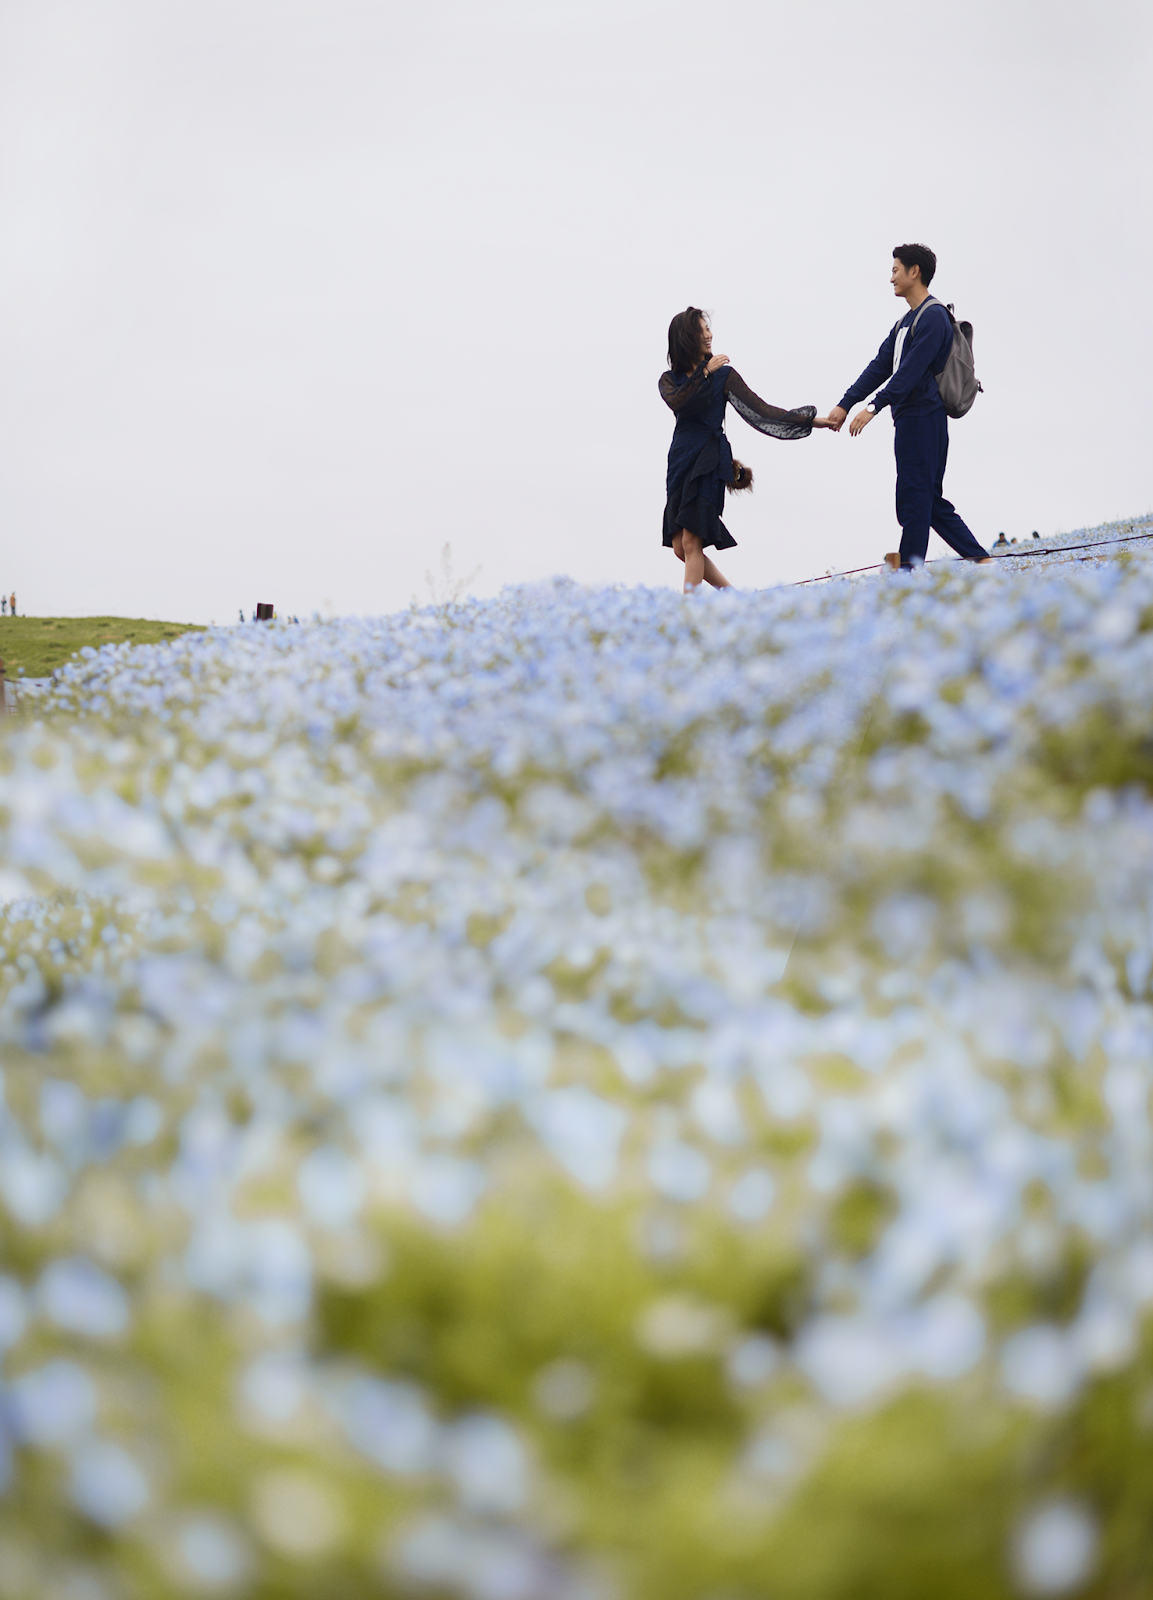 Hitachi Seaside Park, Nemophila Fields, Blue Flower Fields, Japan Travels / FOREVERVANNY.com